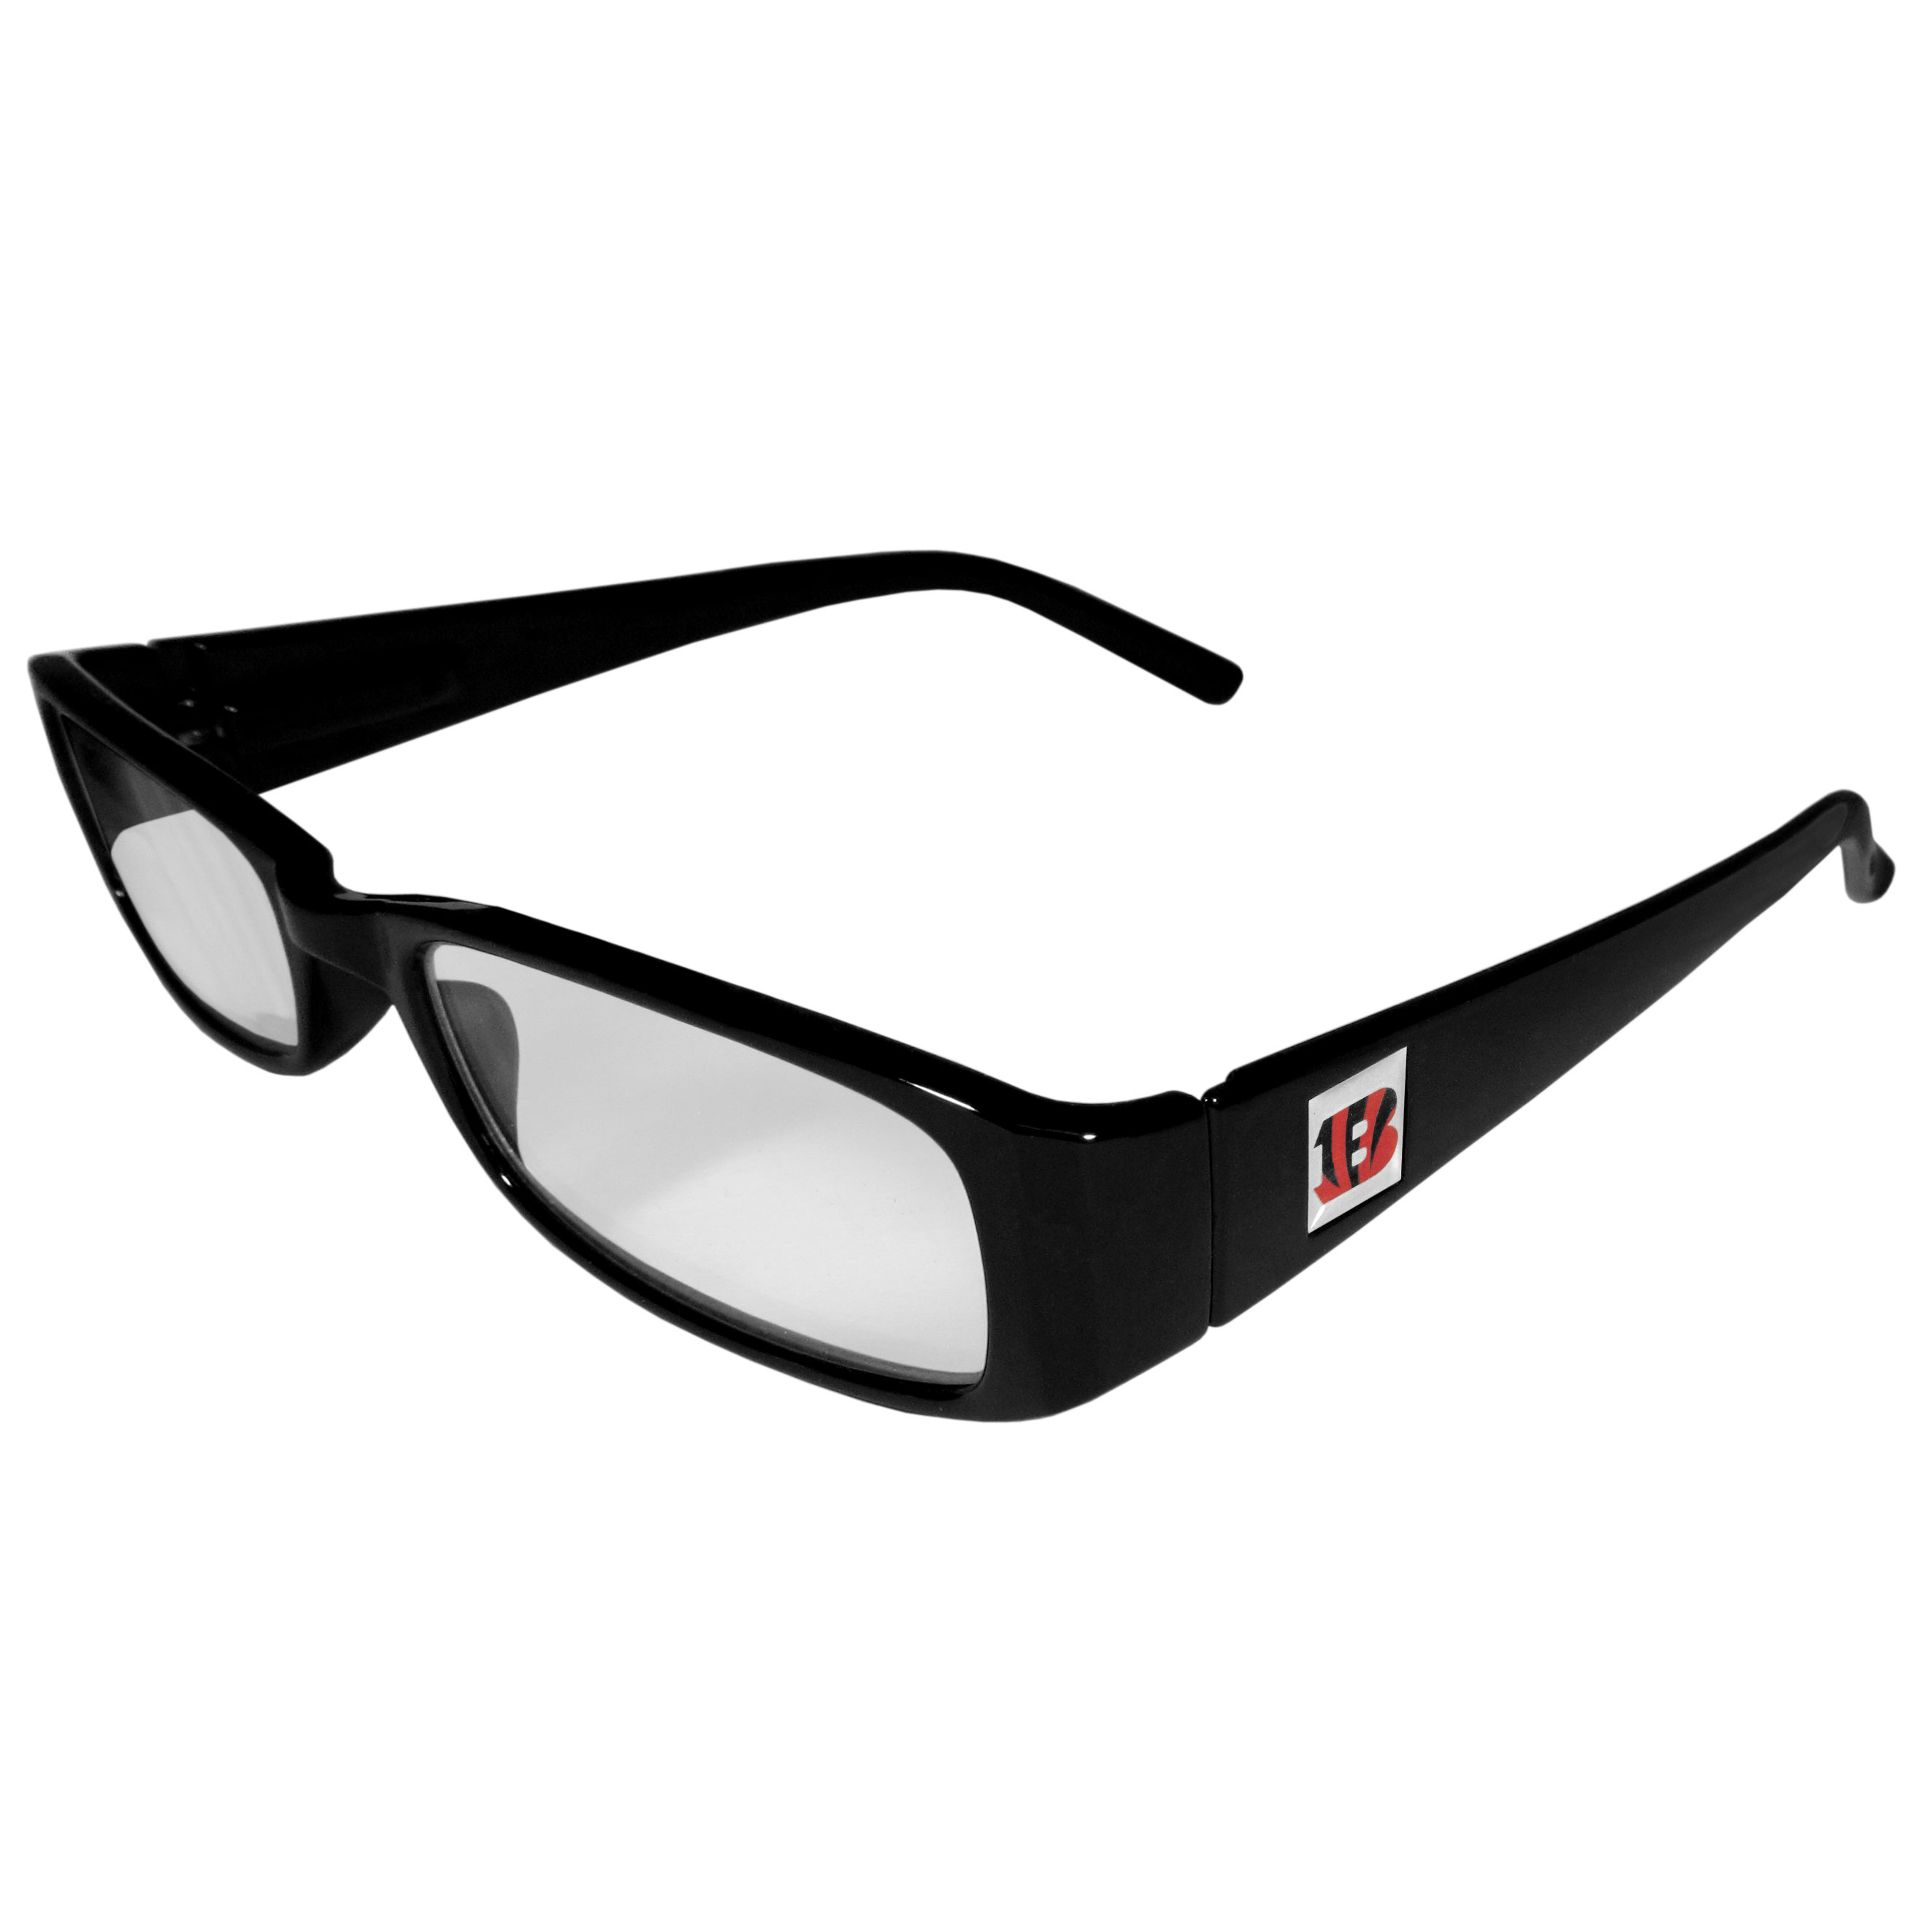 Cincinnati Bengals Black Reading Glasses +1.25 - Our Cincinnati Bengals reading glasses are 5.25 inches wide and feature the team logo on each arm. Magnification Power 1.25